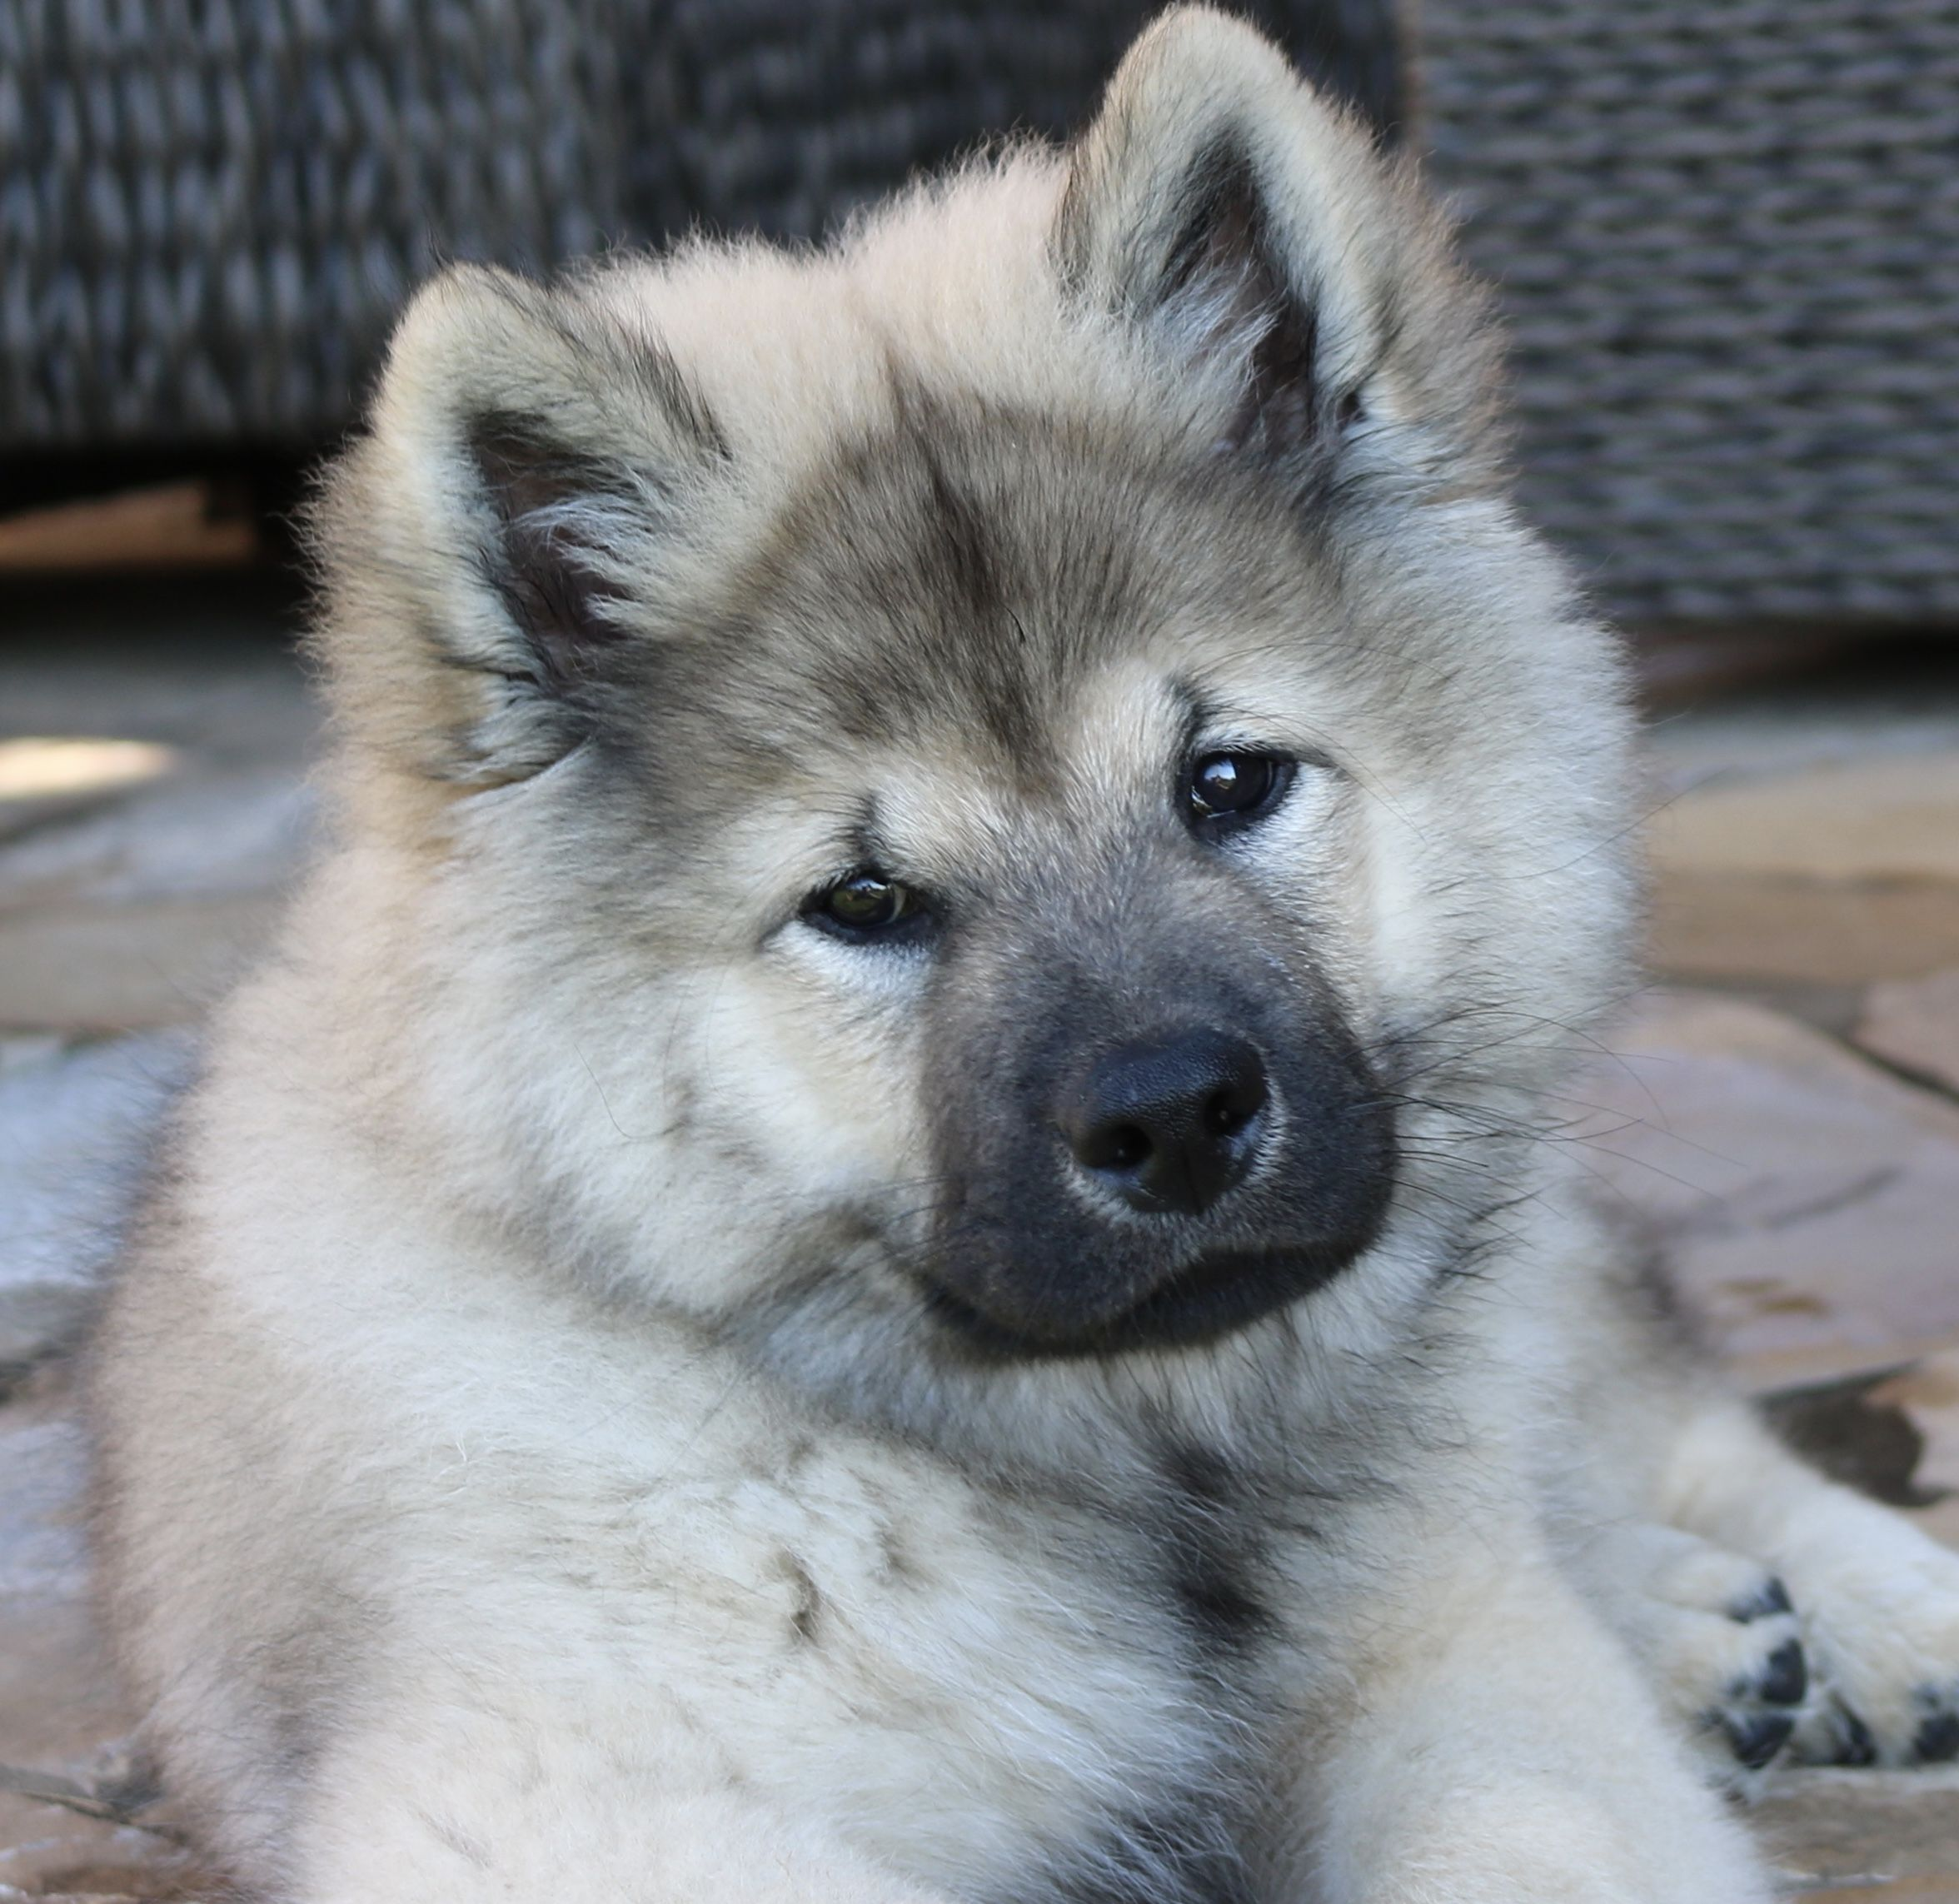 Pin By Heather Carmosino On Eurasier Dogs Cute Dogs Cuddly Animals Dogs